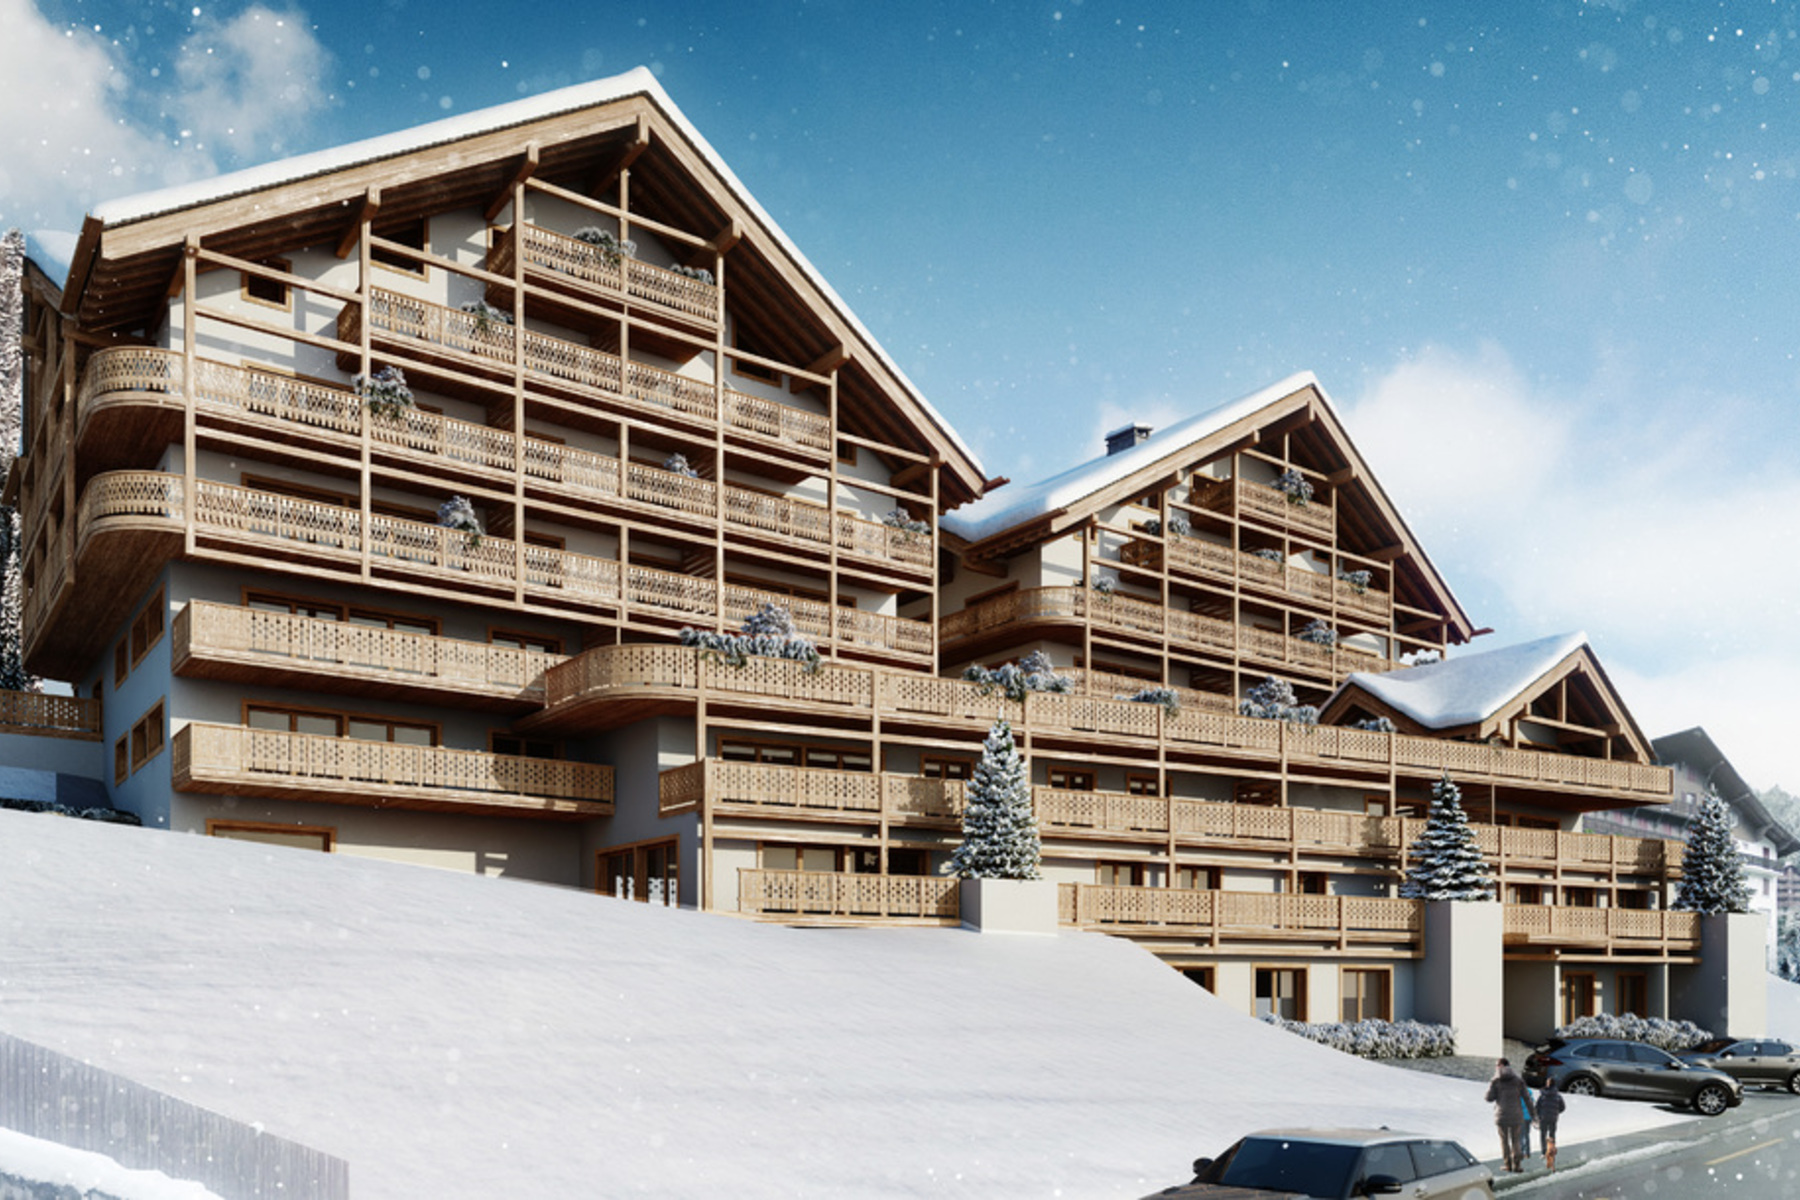 Apartamento por un Venta en Résidence Le Montagnier - Luxury apartment right by the ski slopes Champéry Champery, Valais, 1874 Suiza